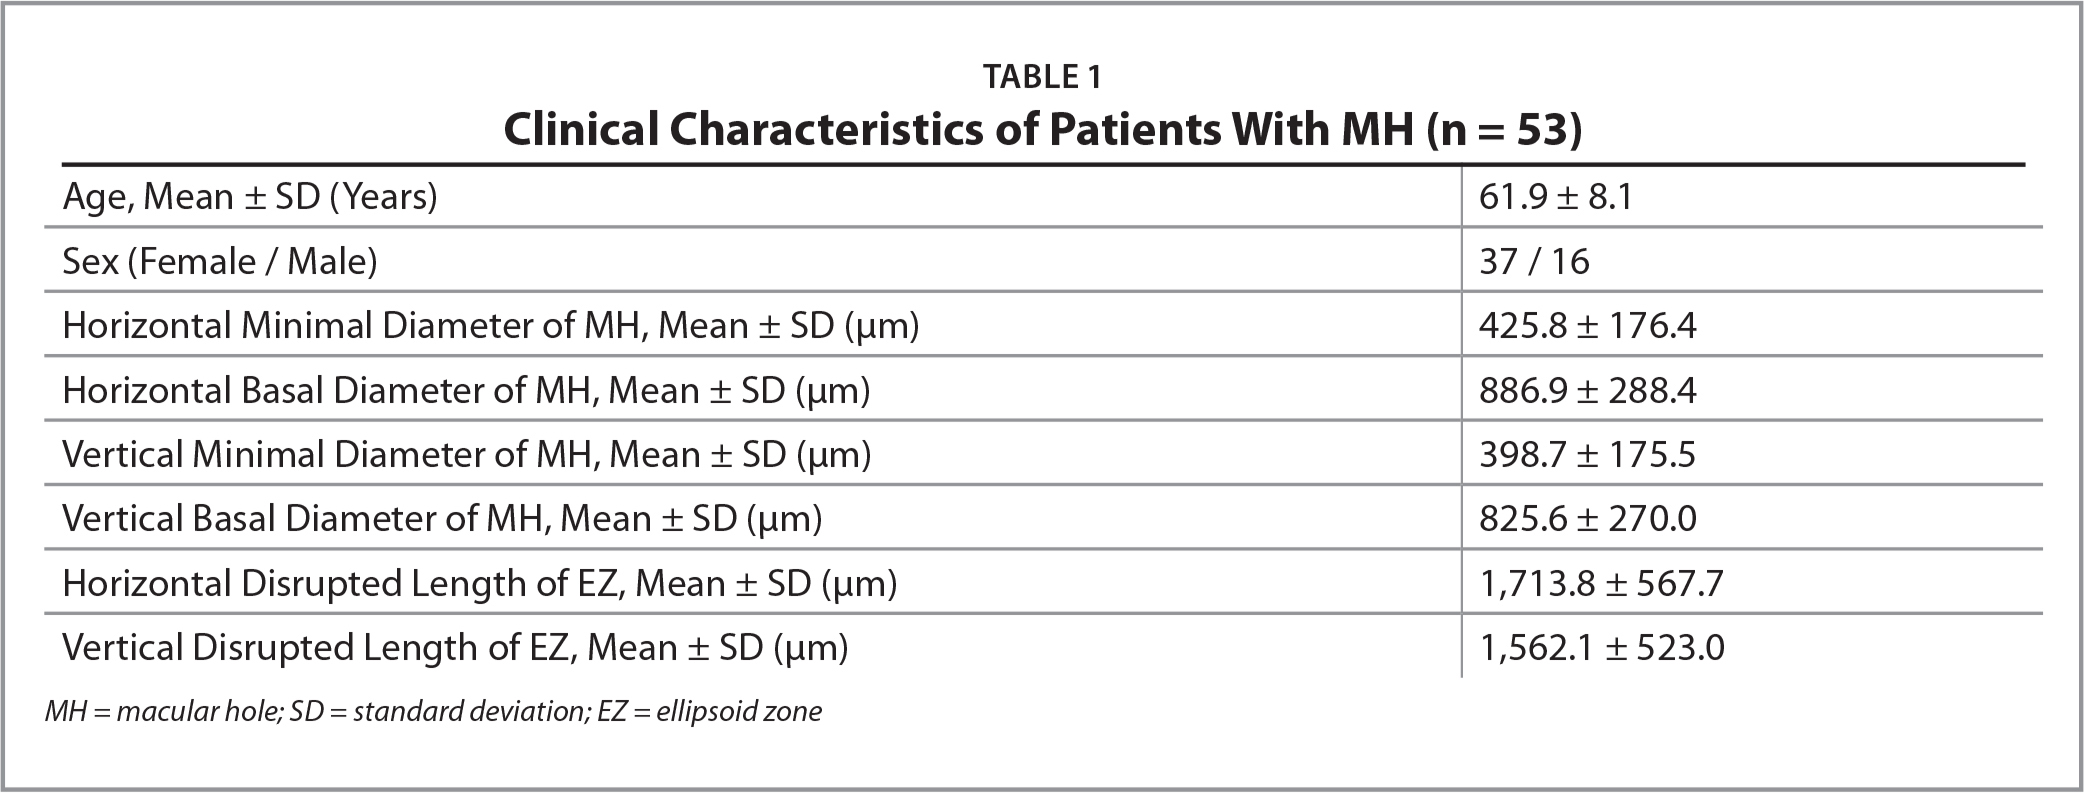 Clinical Characteristics of Patients With MH (n = 53)